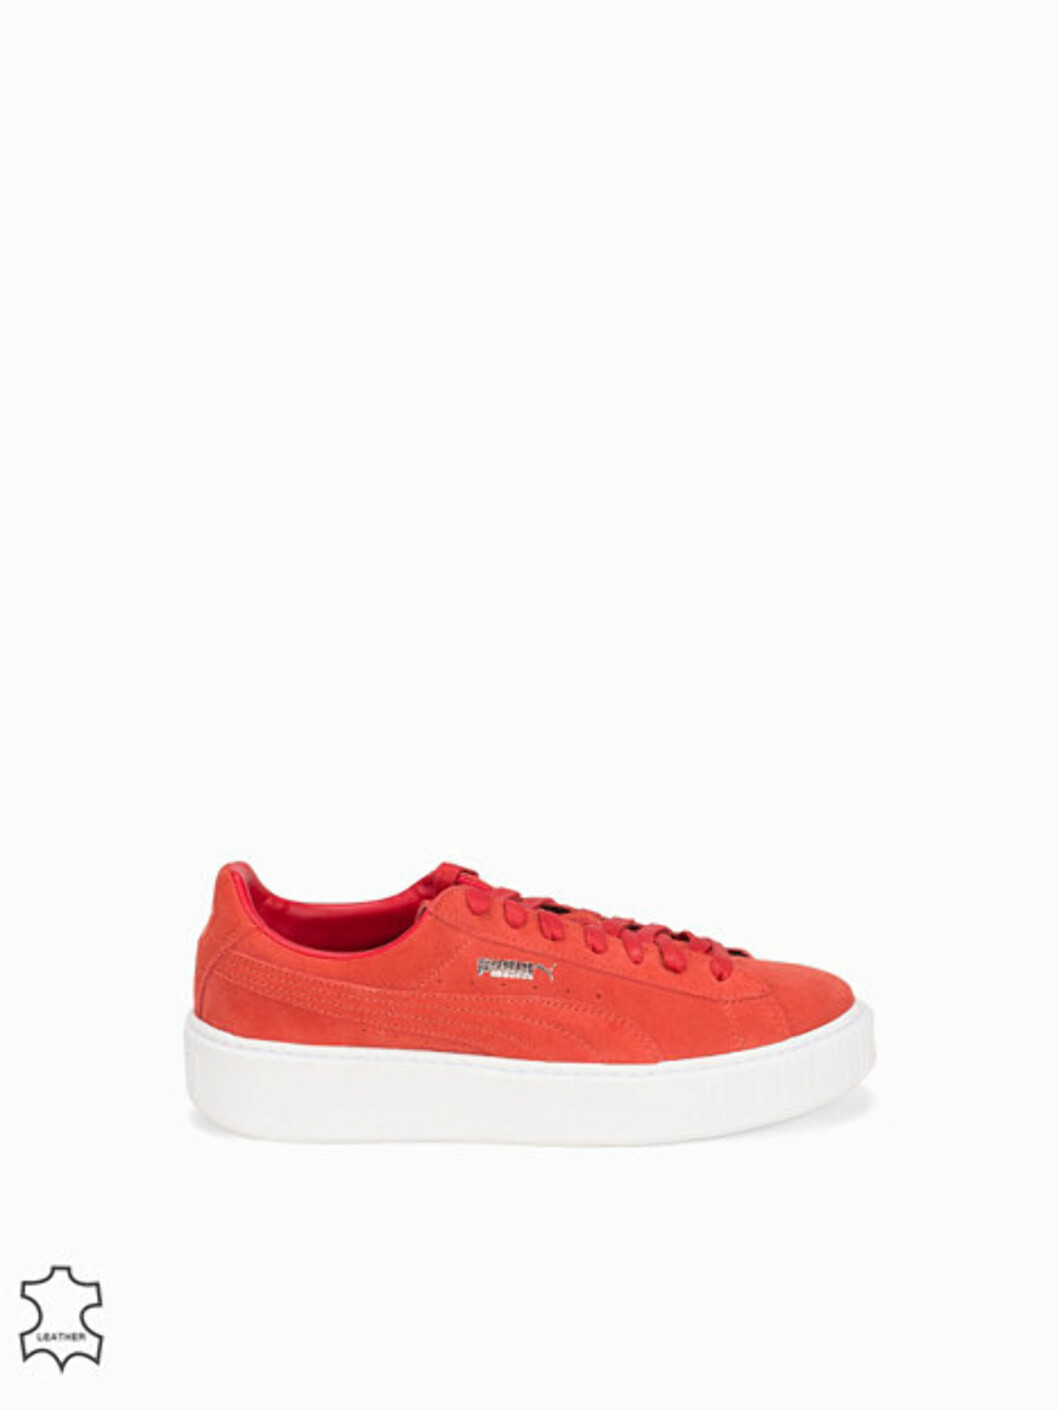 Sneakers fra Puma via Nelly.com | kr 1095 | http://my.nelly.com/link/click/15849